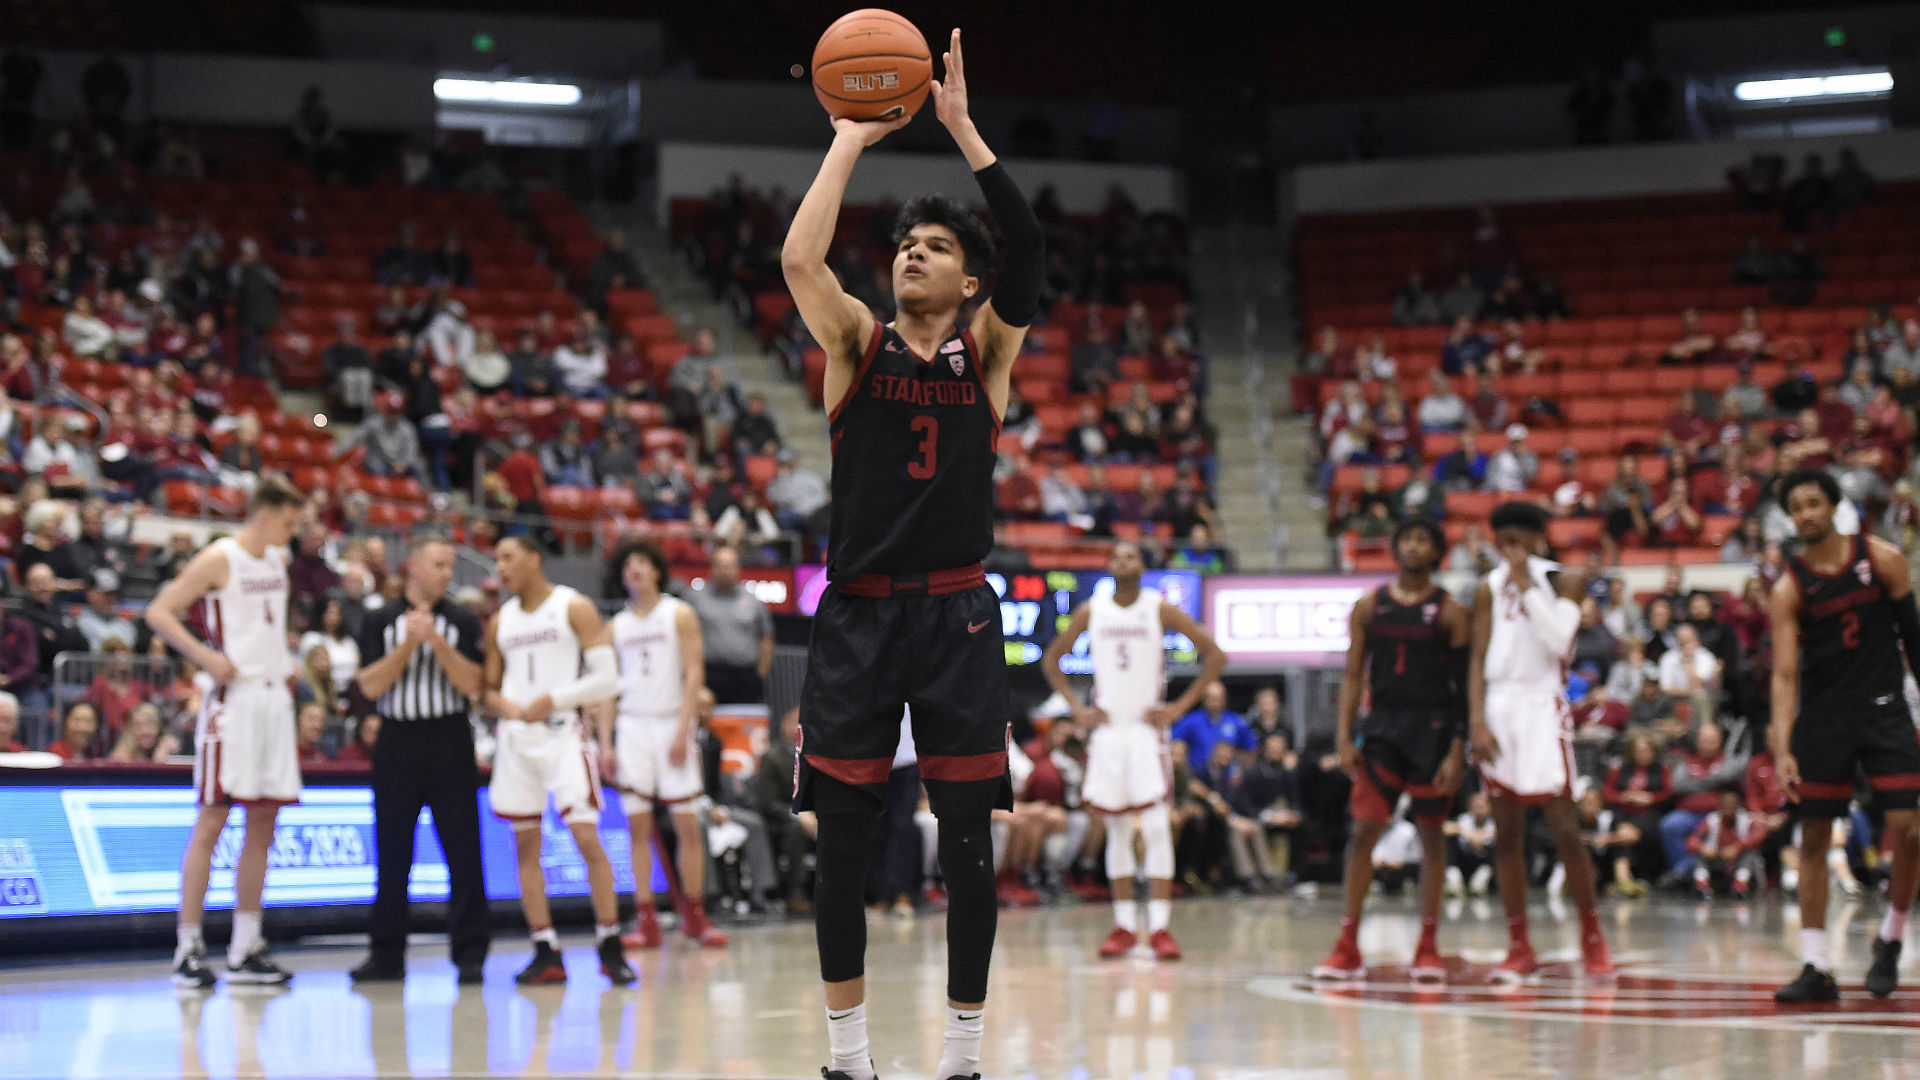 Stanford's Tyrell Terry's stock is rising, but he's one of NBA draft's most unpredictable prospects